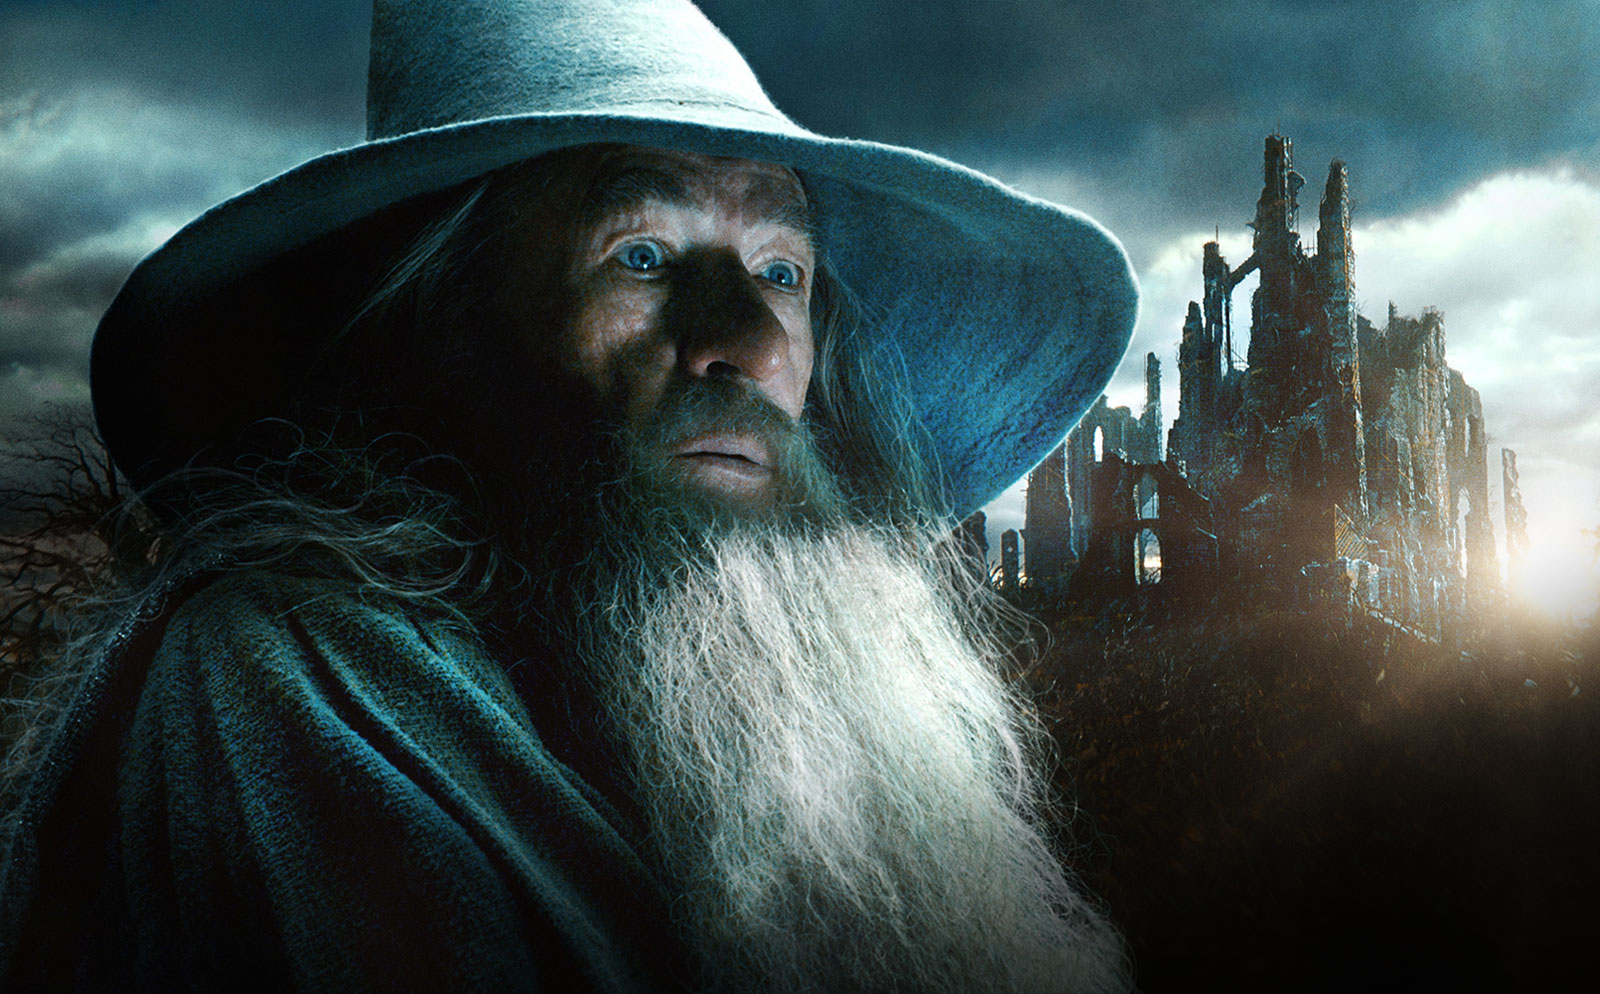 Bilbo and Gandalf clip from The Hobbit: The Desolation Of Smaug | Hobbit Movie News and Rumors | TheOneRing.net™